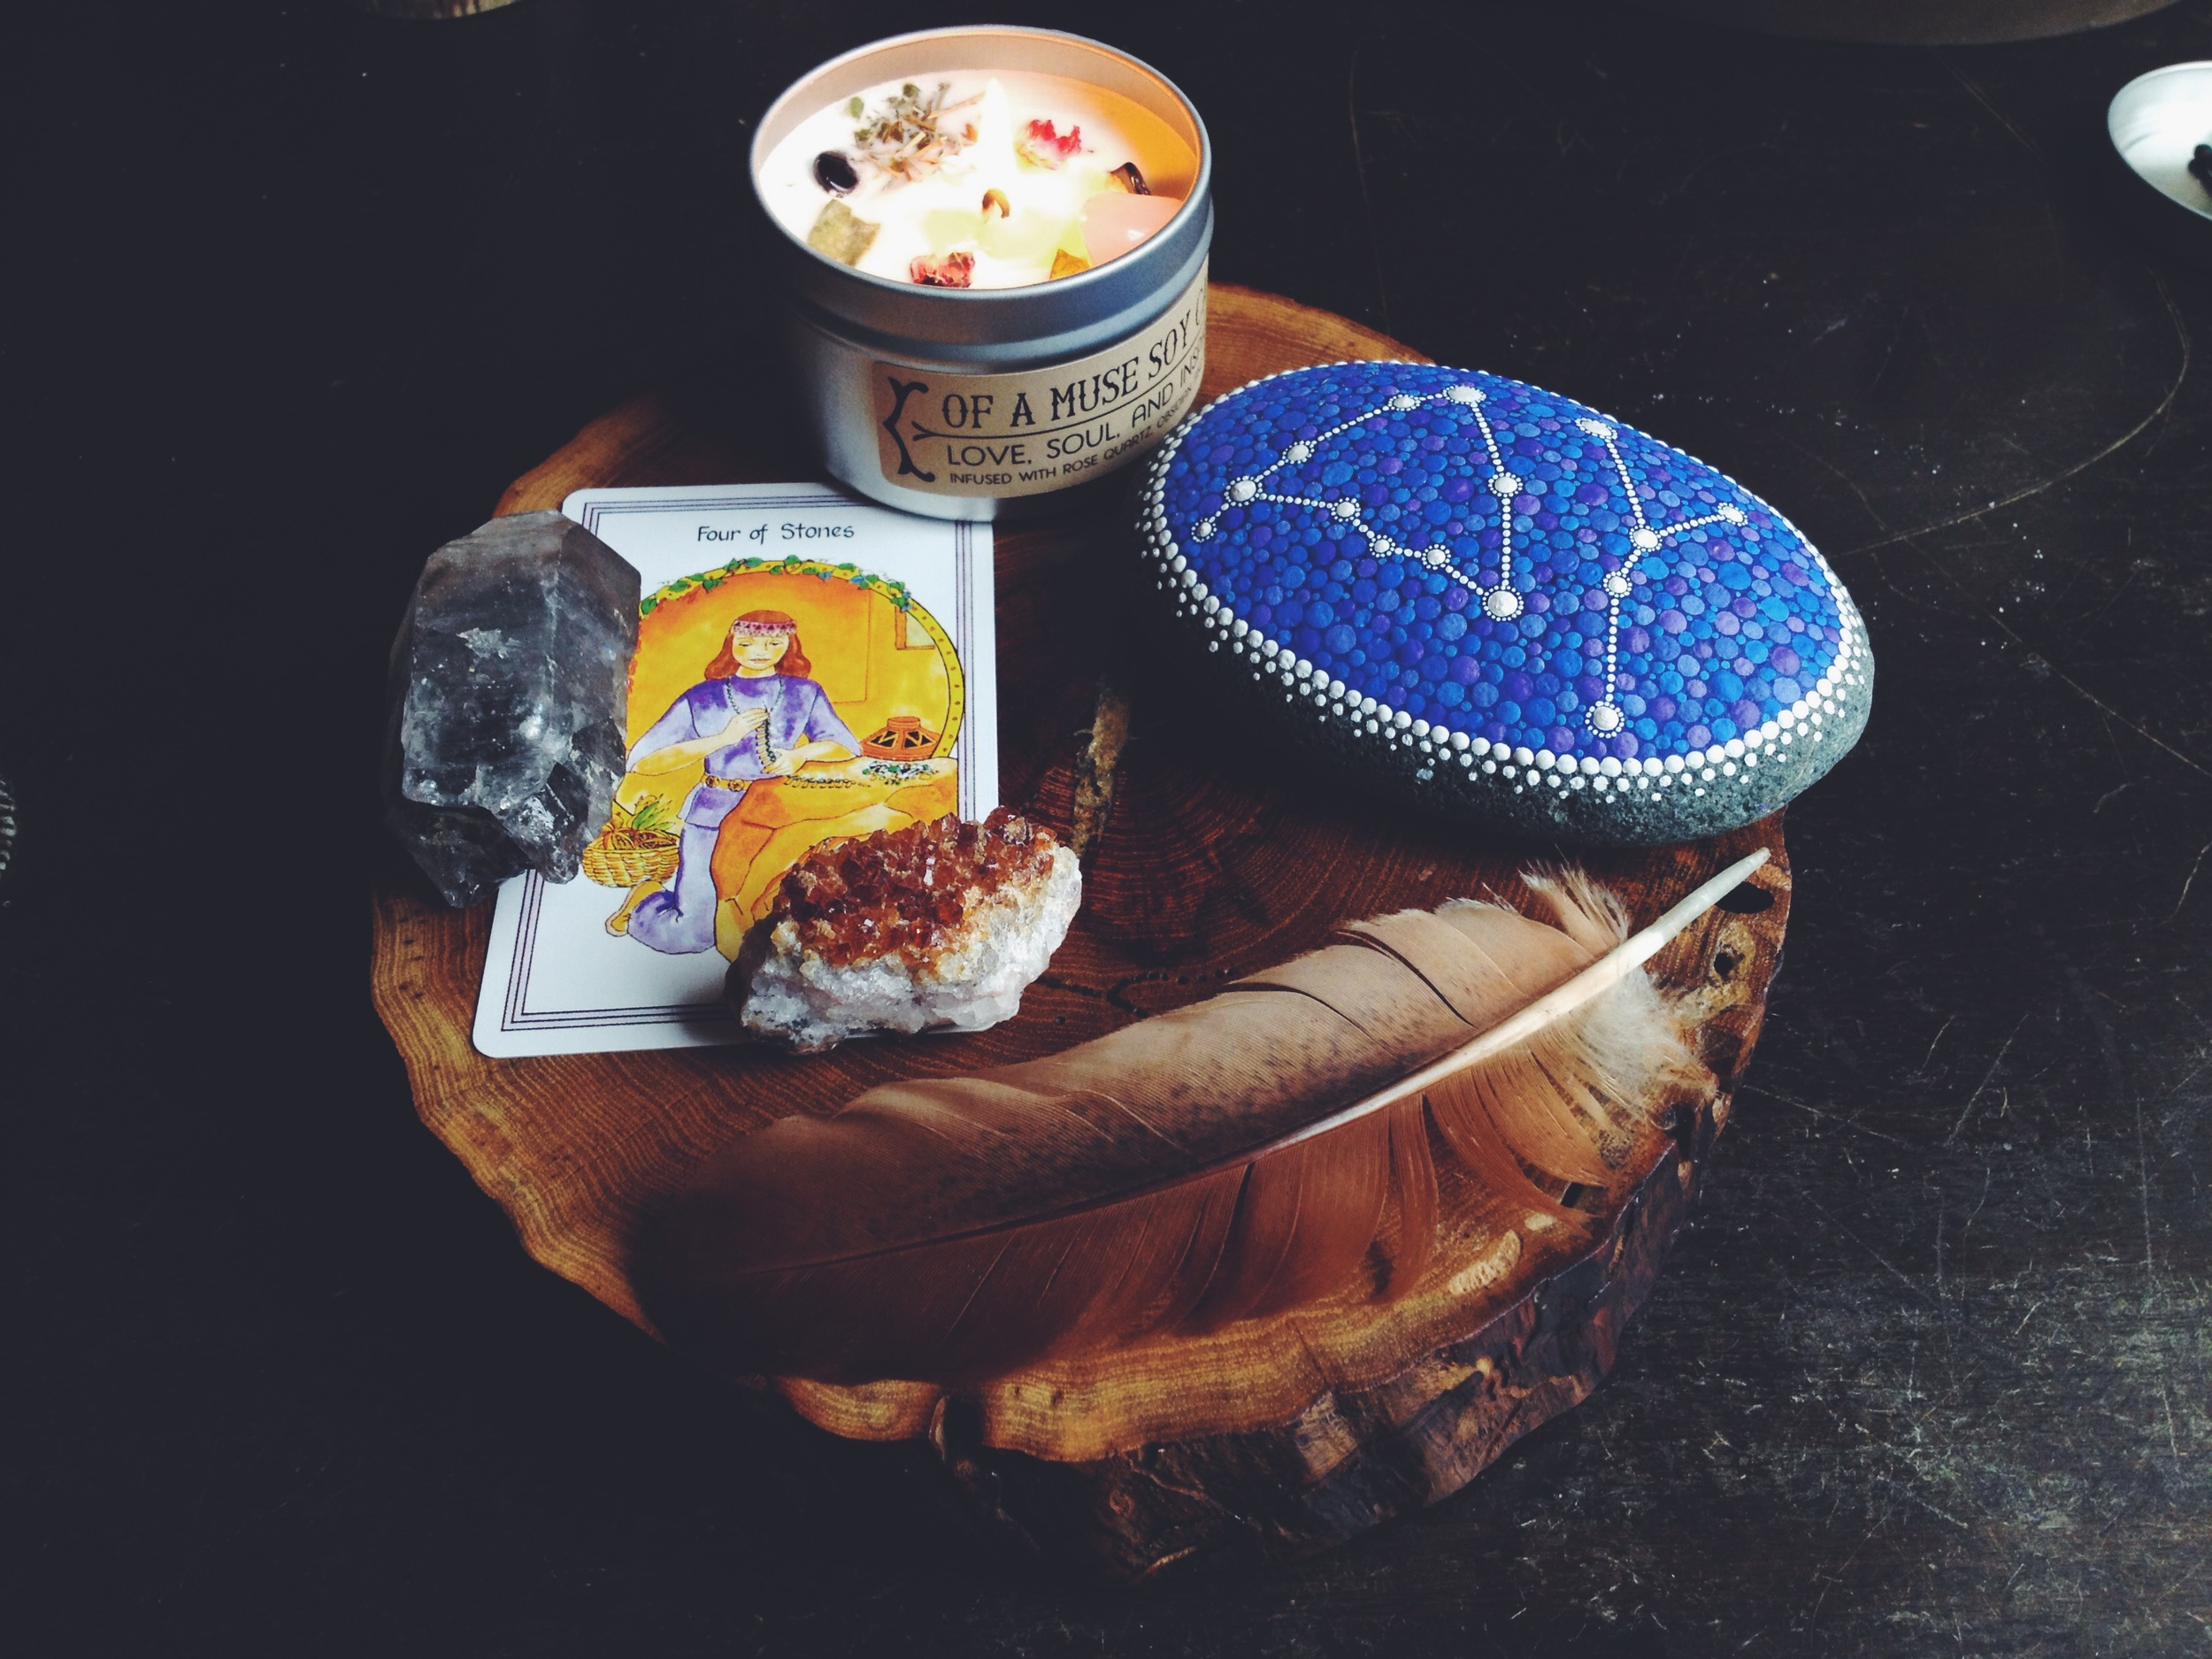 My card for the month of February, Handmade candle made by  House of Good Ju Ju  for a local shop called  Of A Muse , Handpainted zodiac stone for James and I by  Elspeth McLean , reclaimed wood oak slice by  Nature Bound .